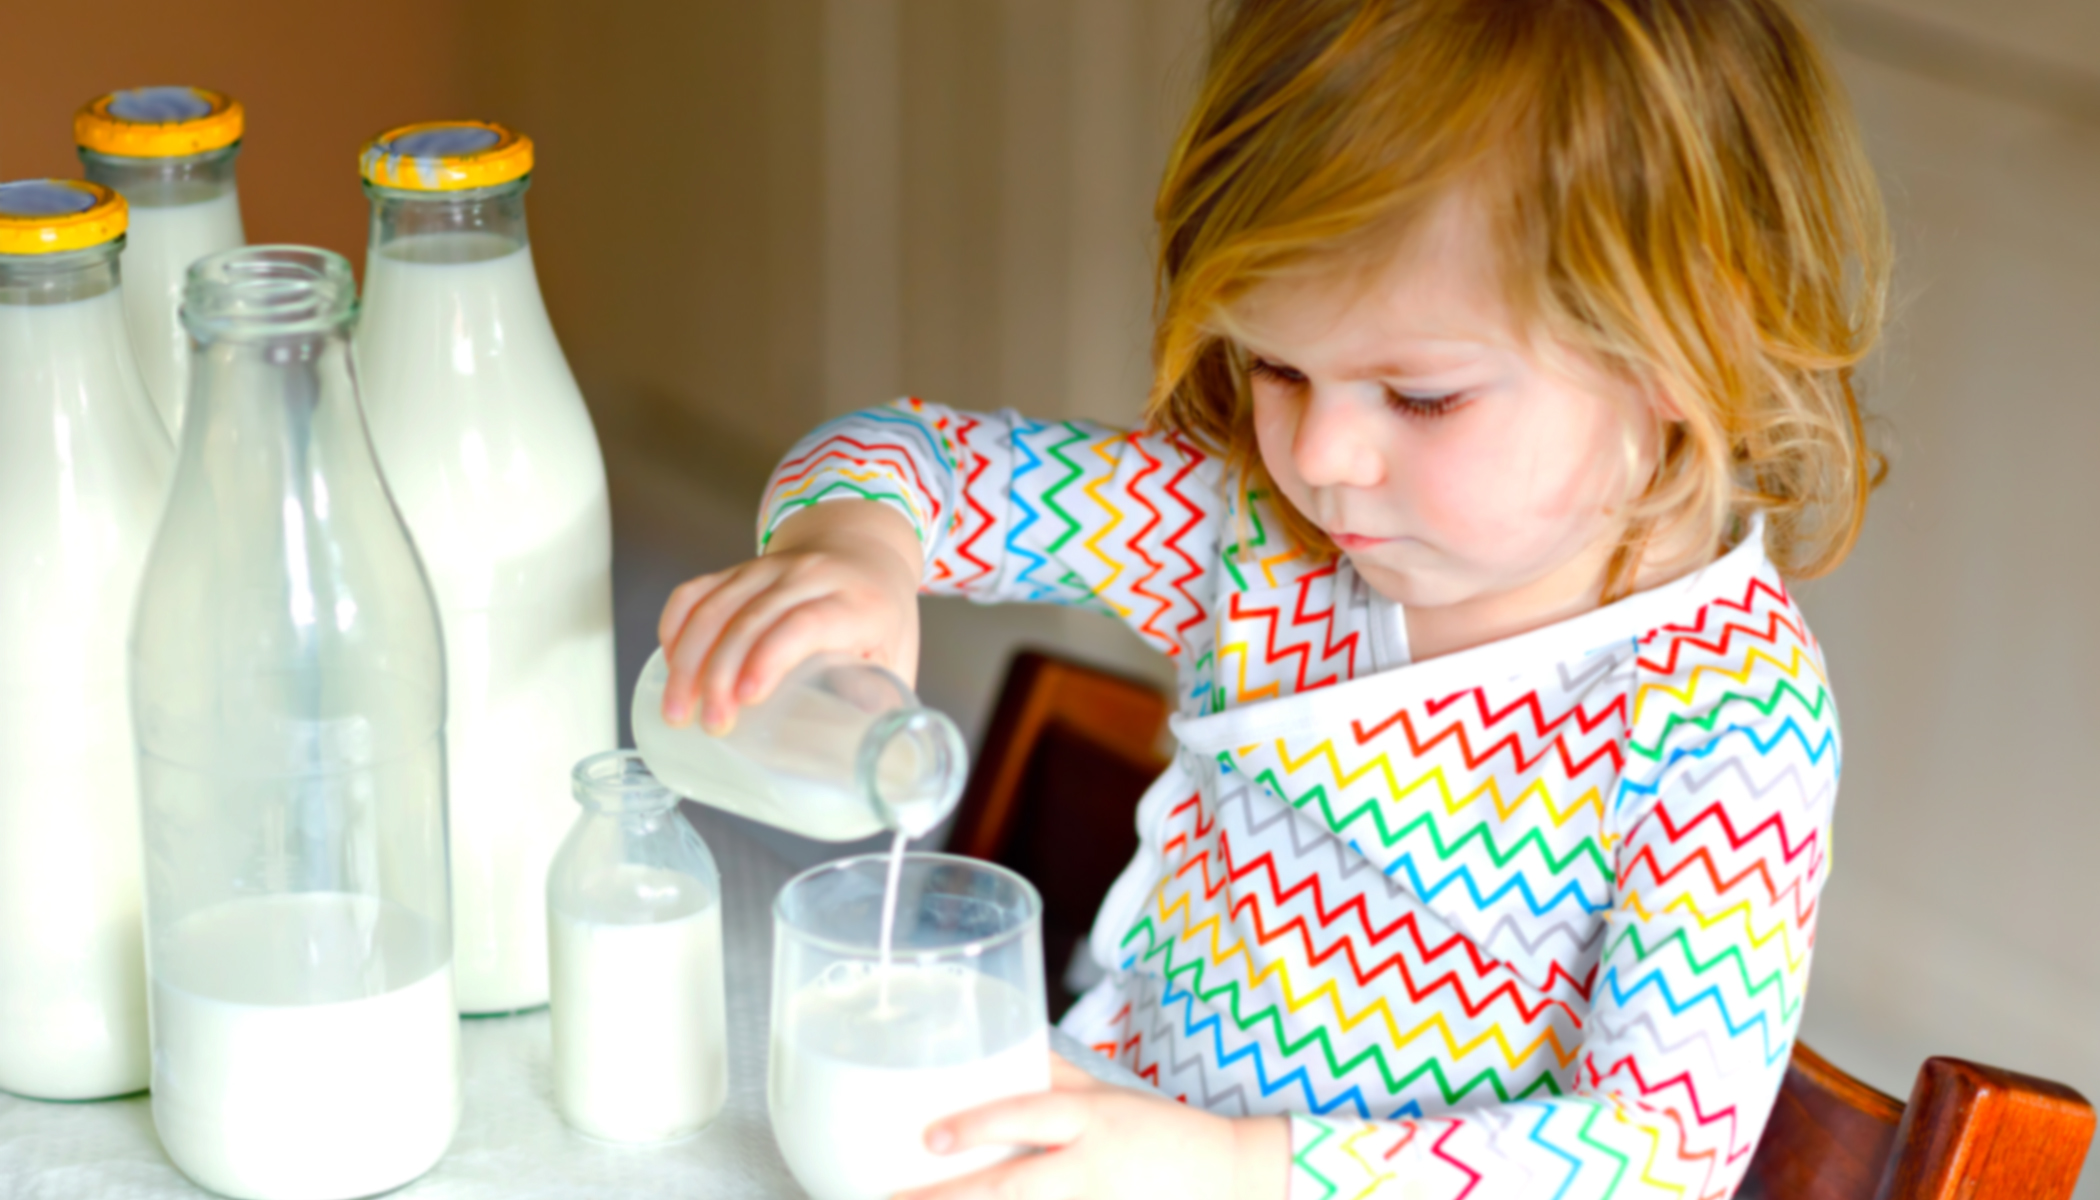 Mother Posts Terrifying Warning: Toddler Hospitalized From Drinking 'Too Much Cow's Milk'